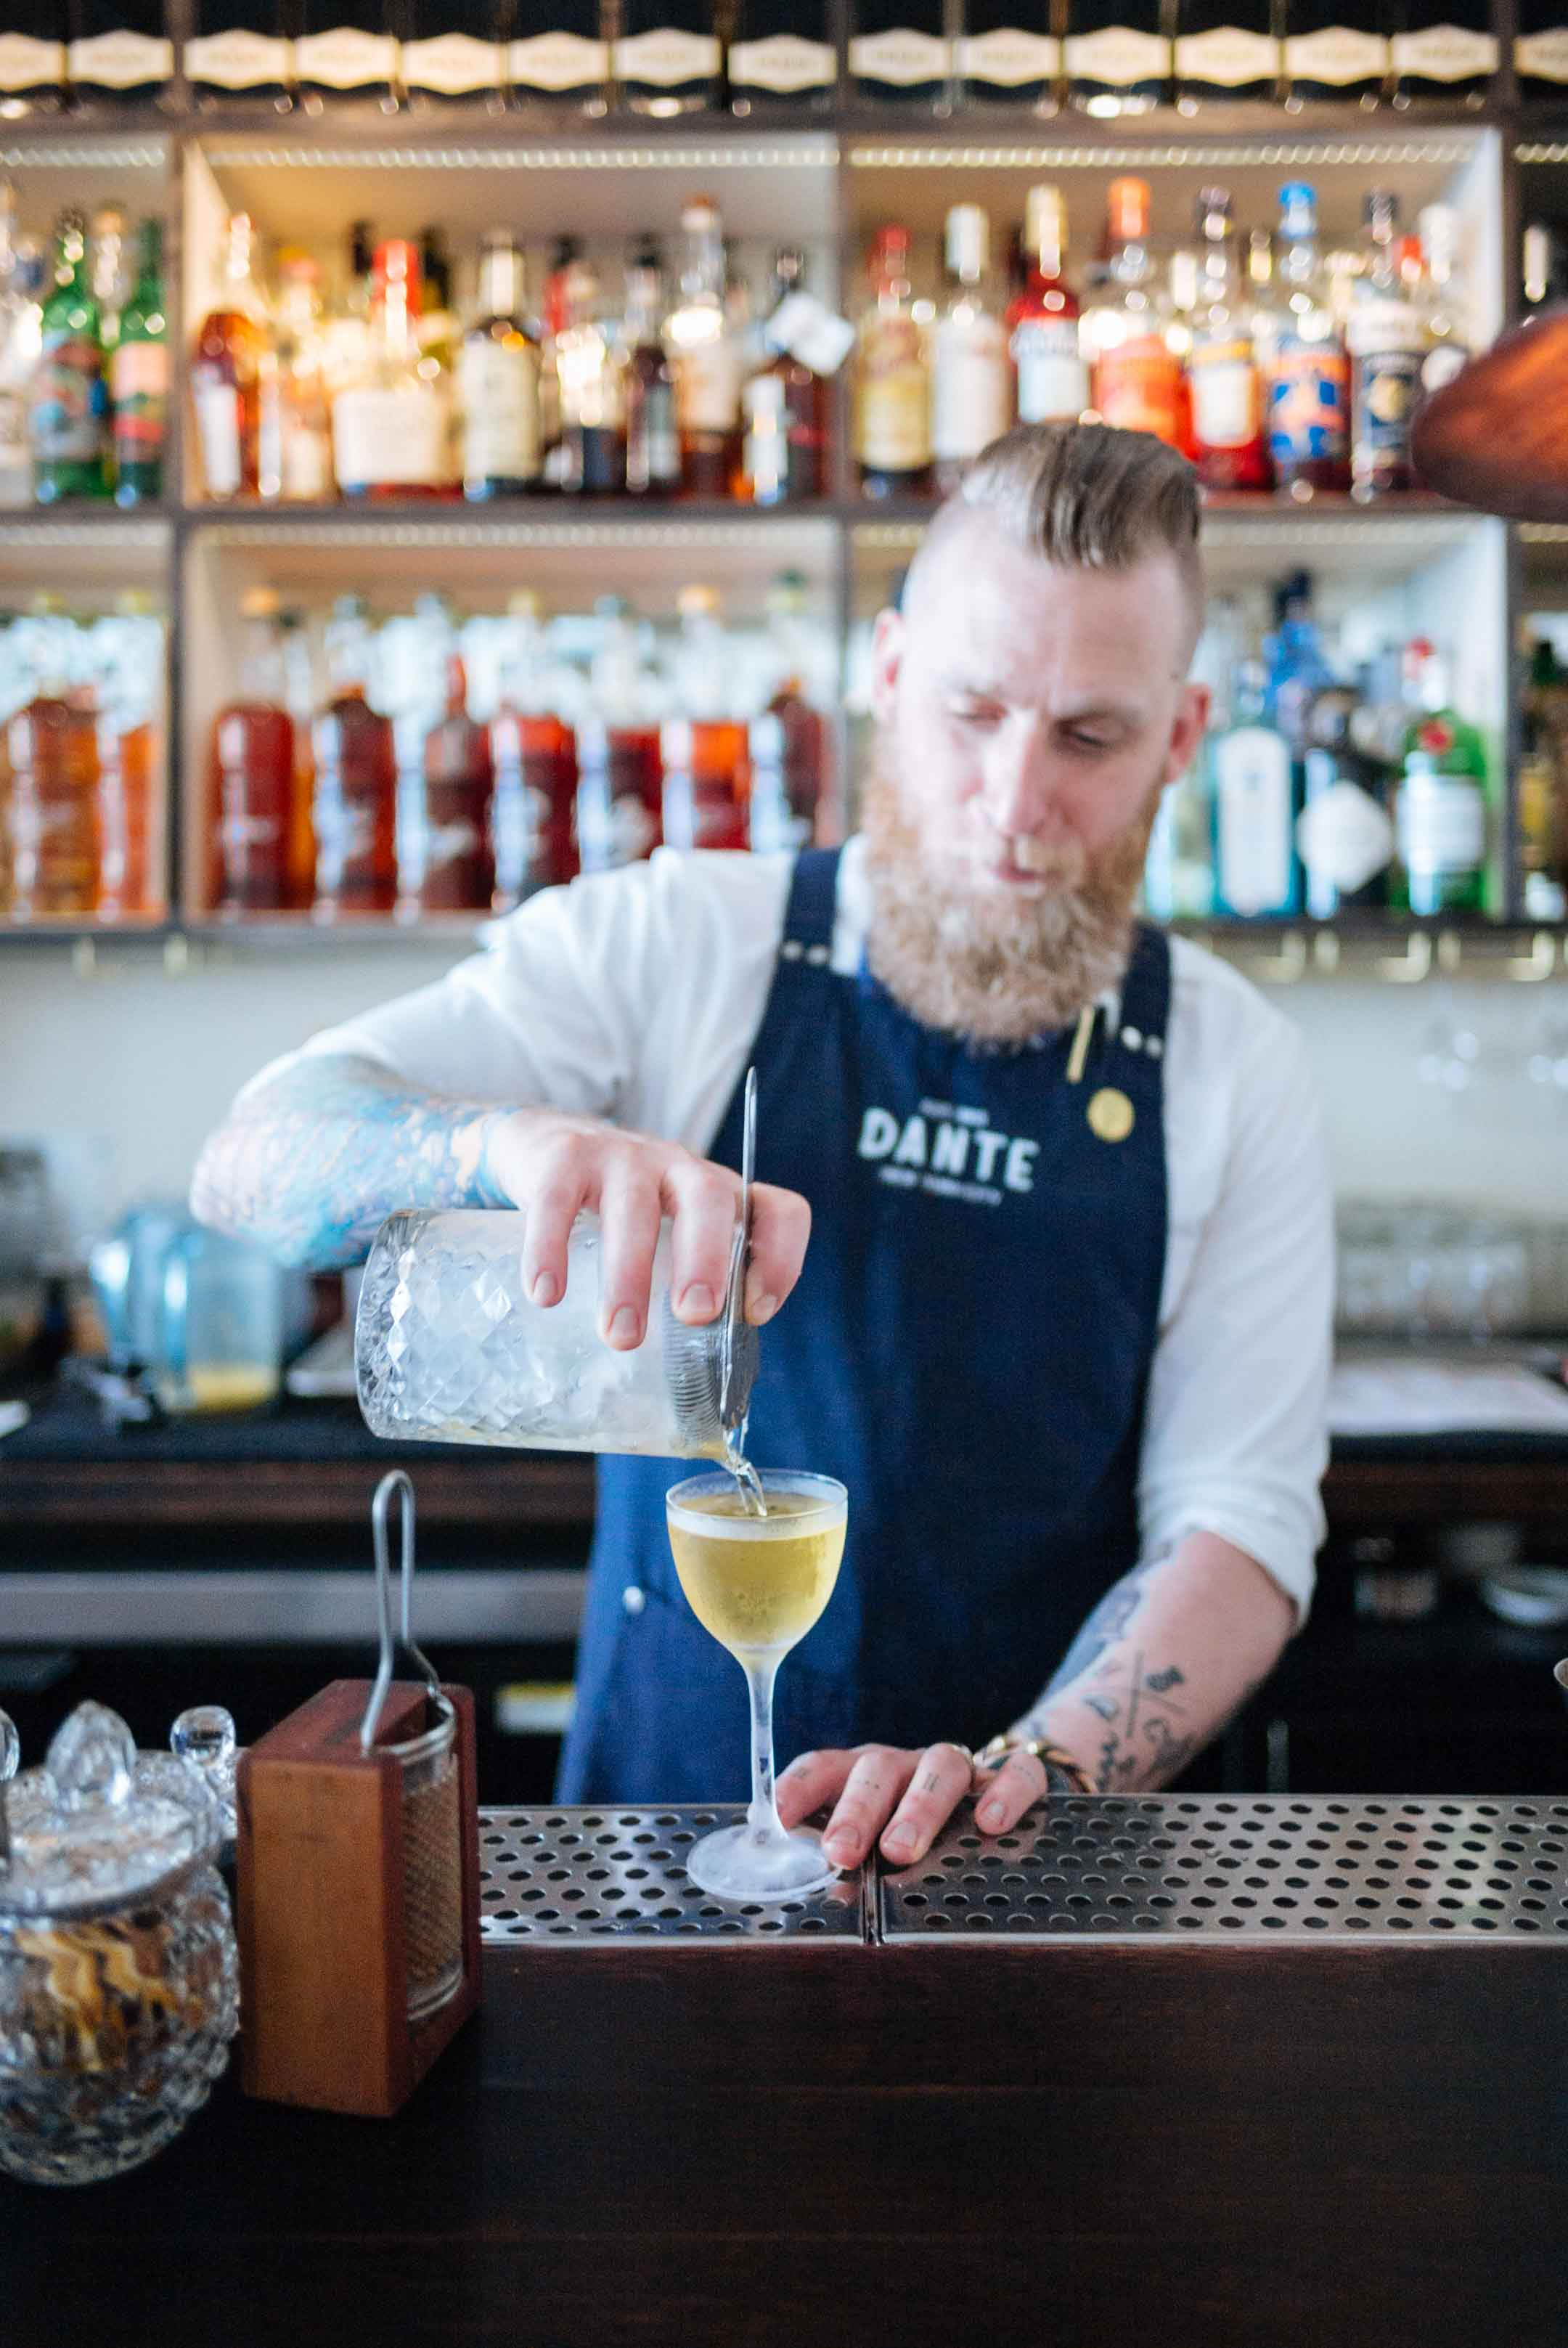 Make a Bianco Negroni from Dante New York City at home like a skilled bartender | thetasteedit.com #cocktail #negroni #nyc #bar